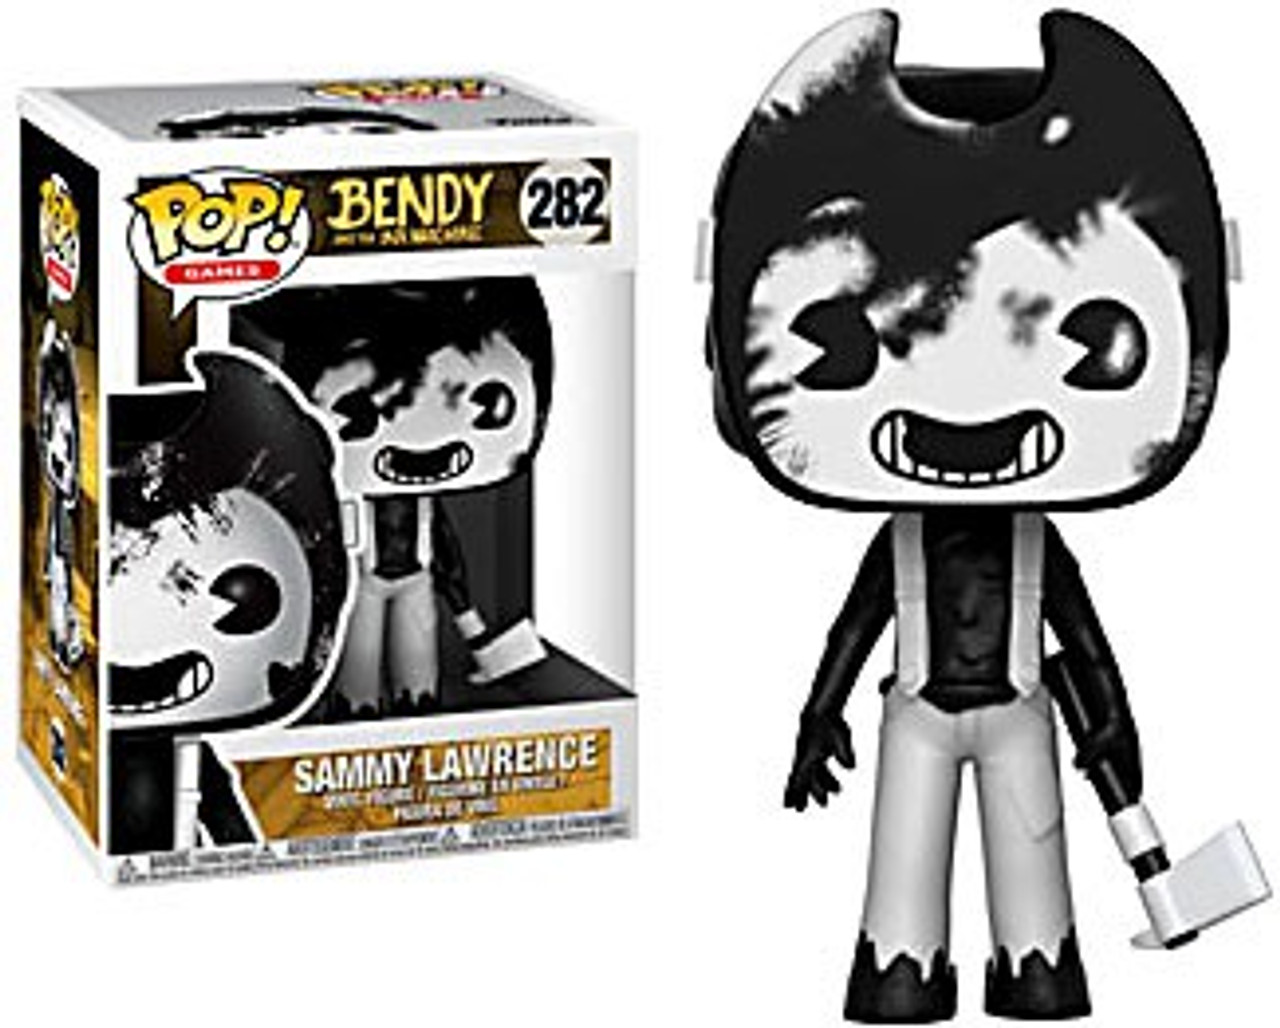 POP Games Bendy and the Ink Machine #282 Sammy Lawrence